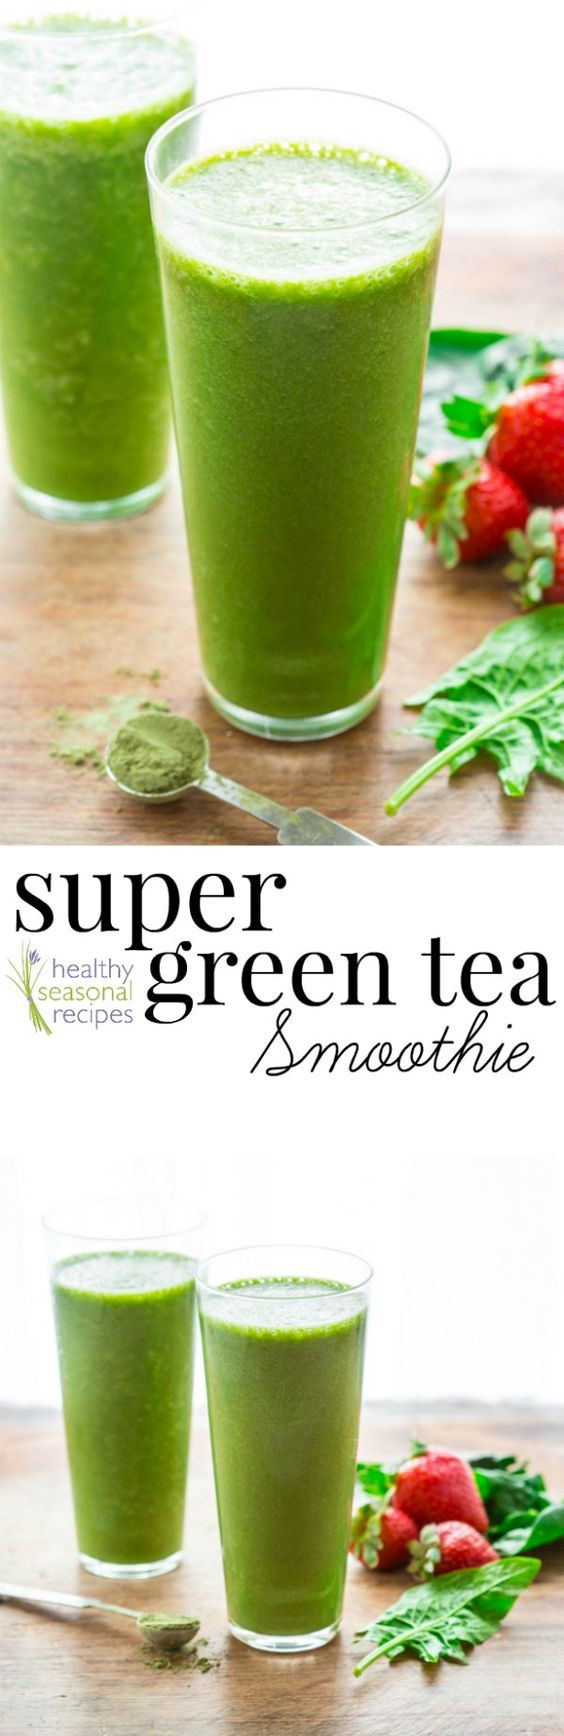 Super Healthy Smoothies Recipes  Antioxidant smoothie Super greens and Green teas on Pinterest